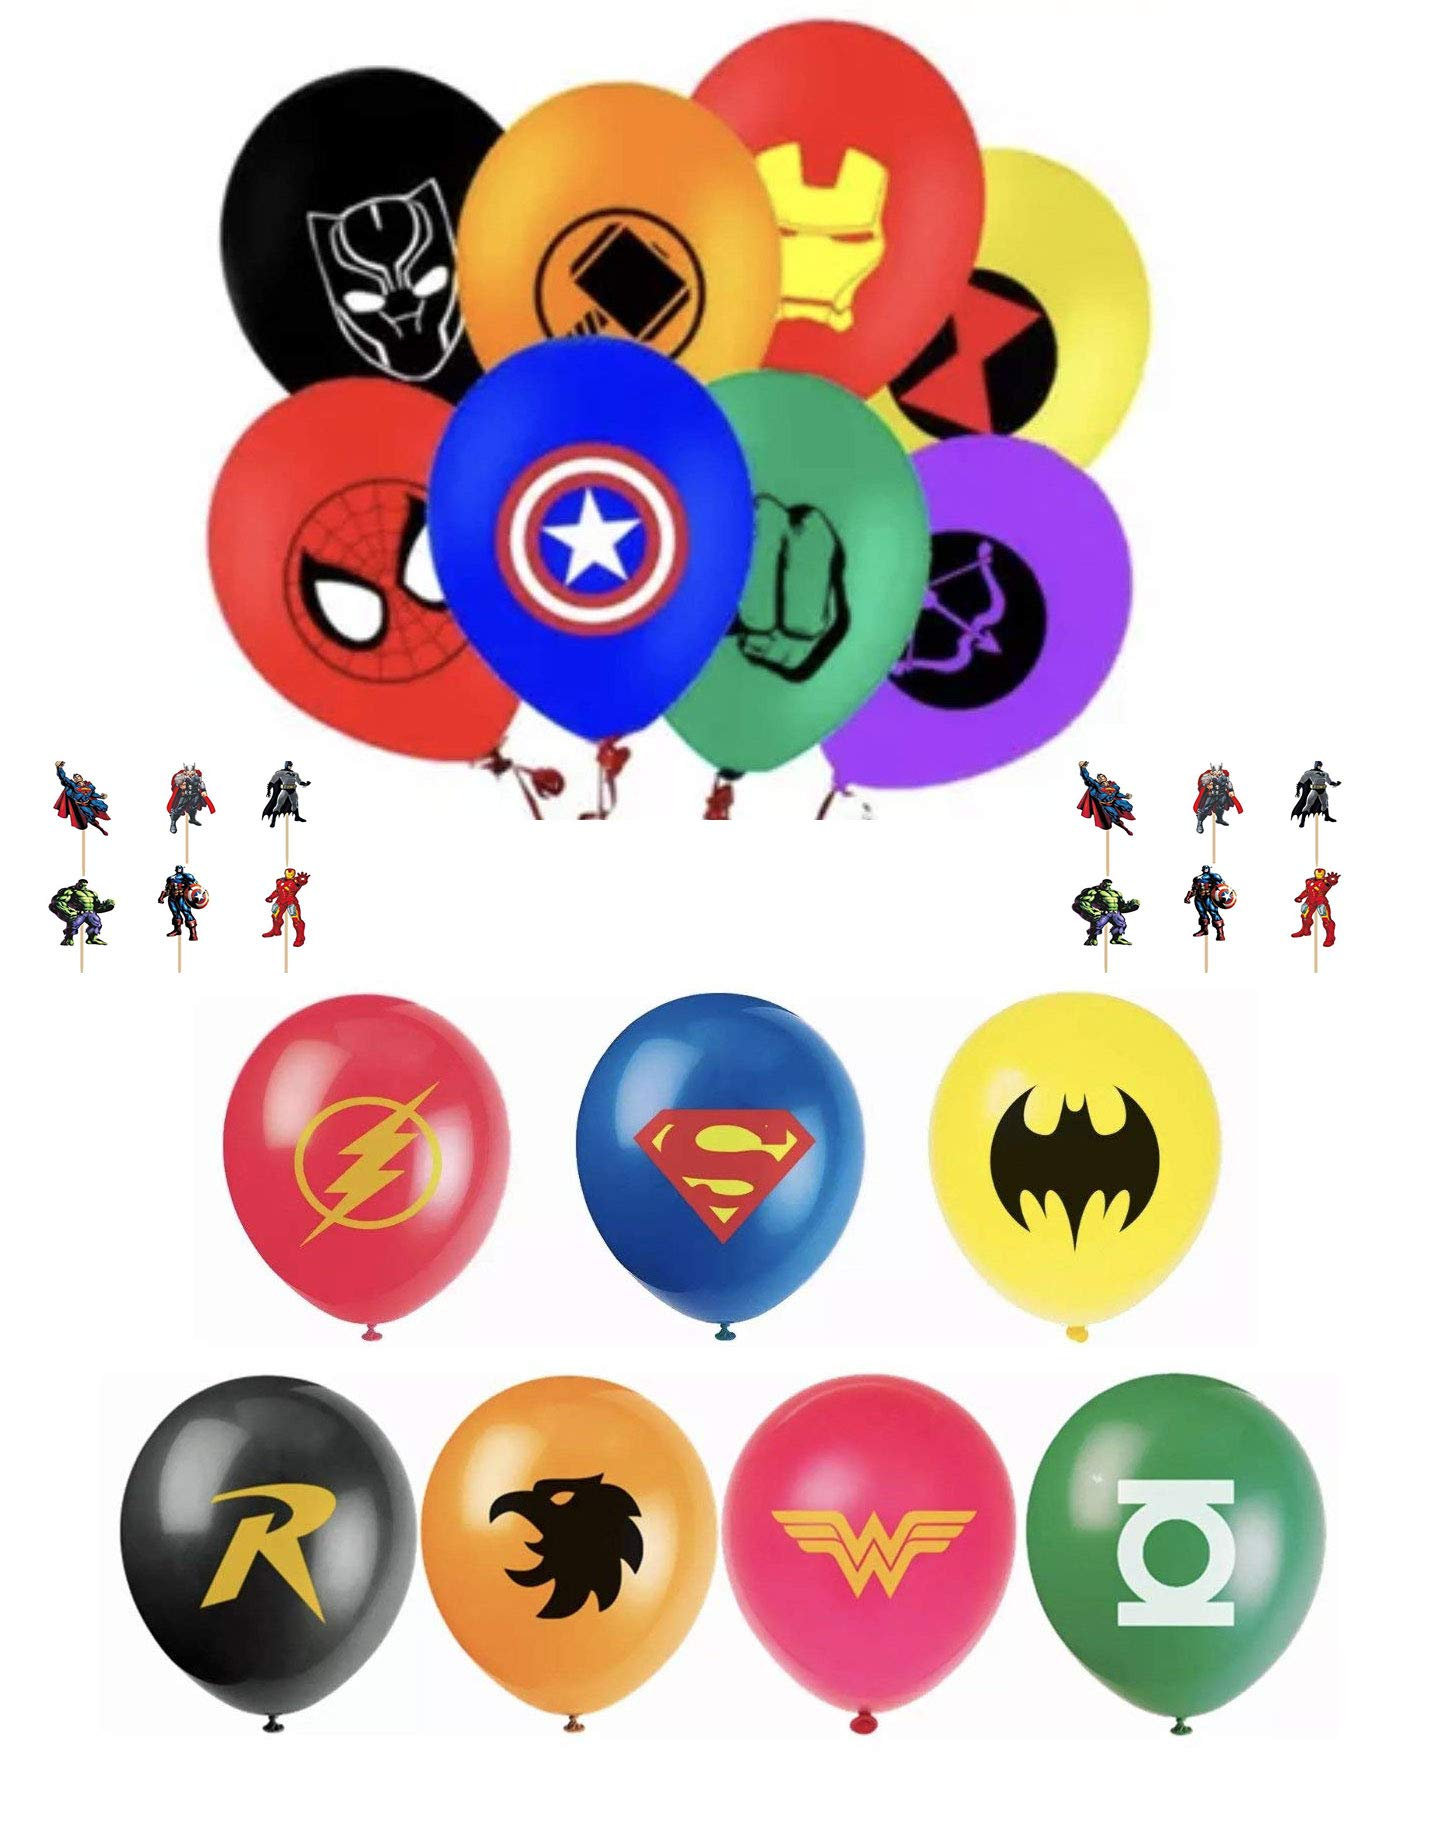 The Avengers and Justice League Superhero Emblem 15 Count Party Balloon Pack - Large 12'' Latex Balloons With 24 Cupcake Cake Pick